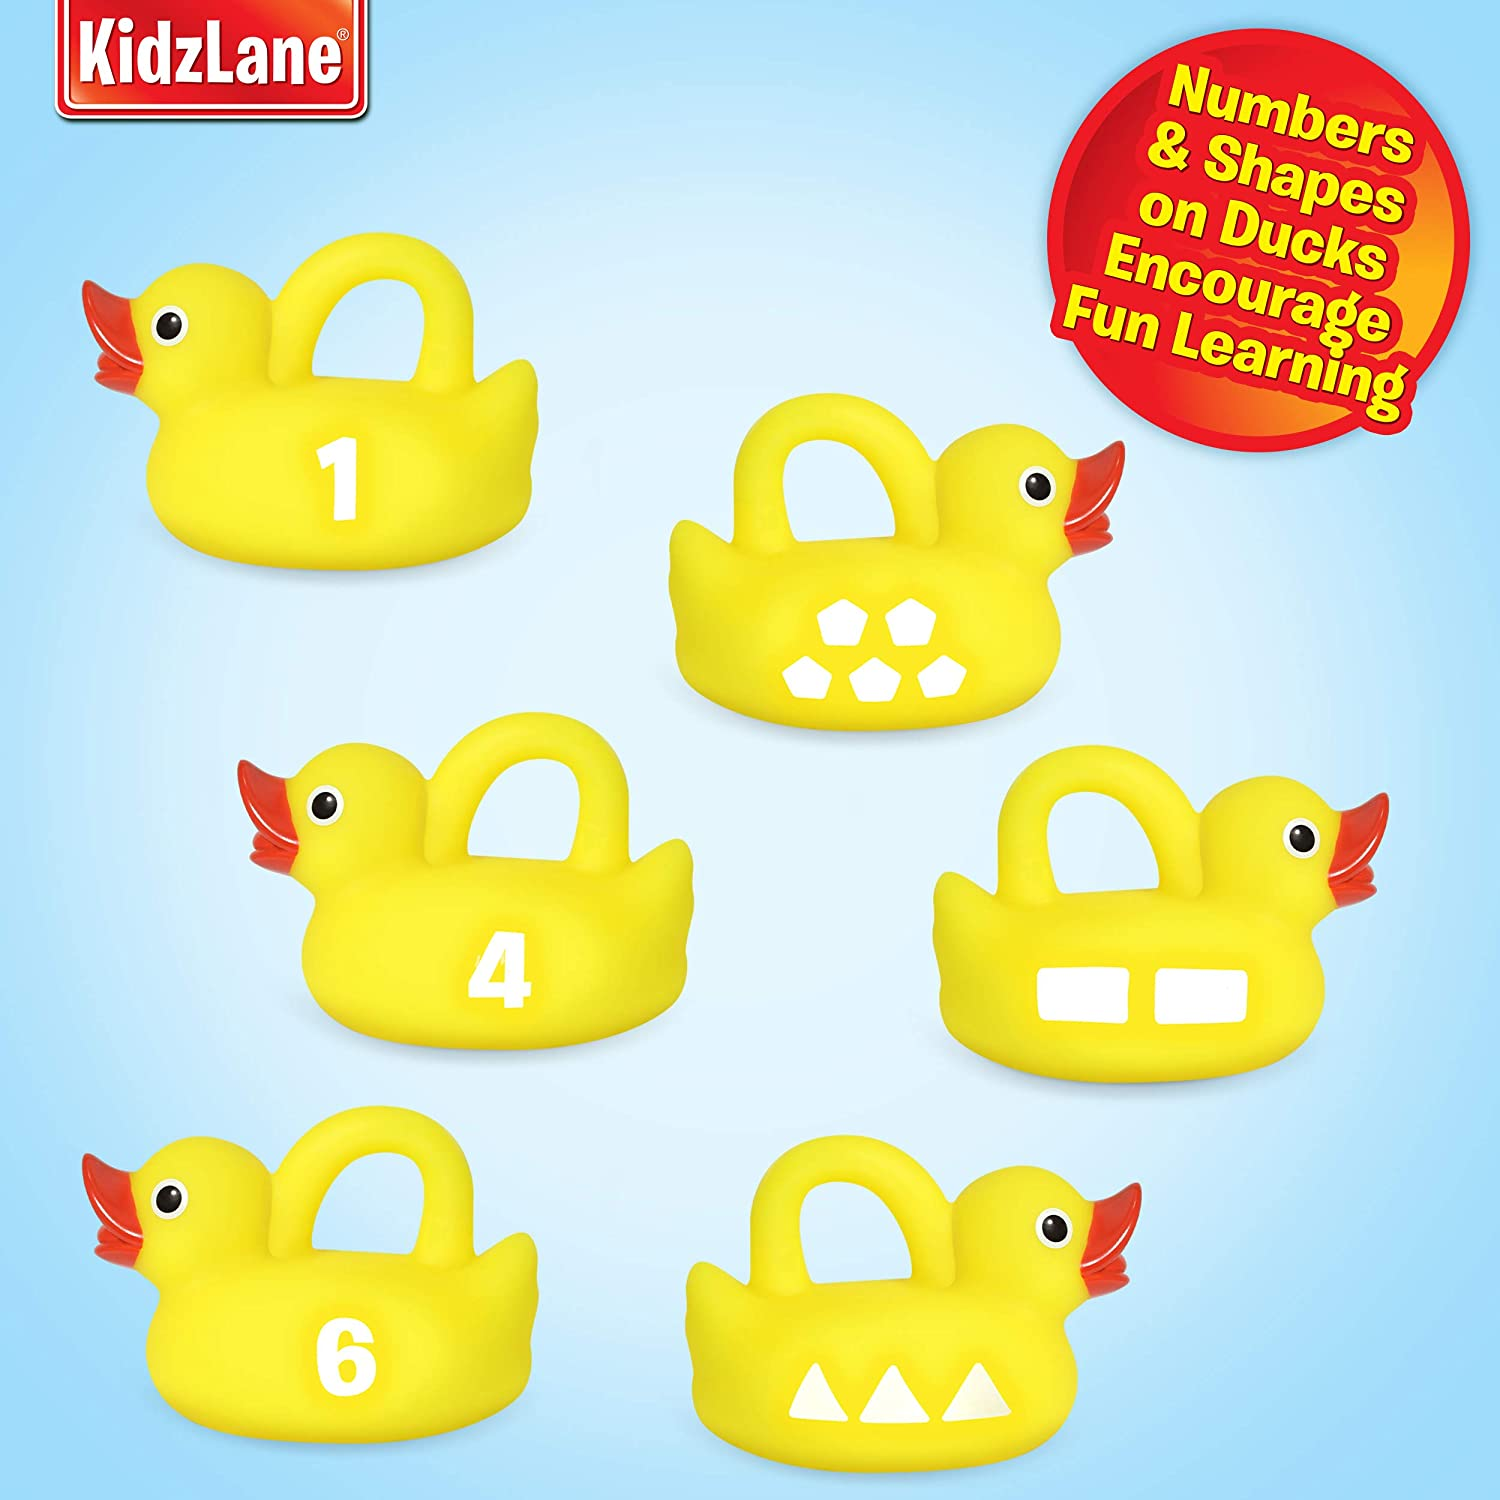 Great Learning Toy for Babies Teaches Numbers /& Shapes Toddlers /& Kids 1 Toy Fishing Pole and 6 Rubber Duckies Mold-Proof Design with no Holes Kidzlane Bath Toys Fishing Game